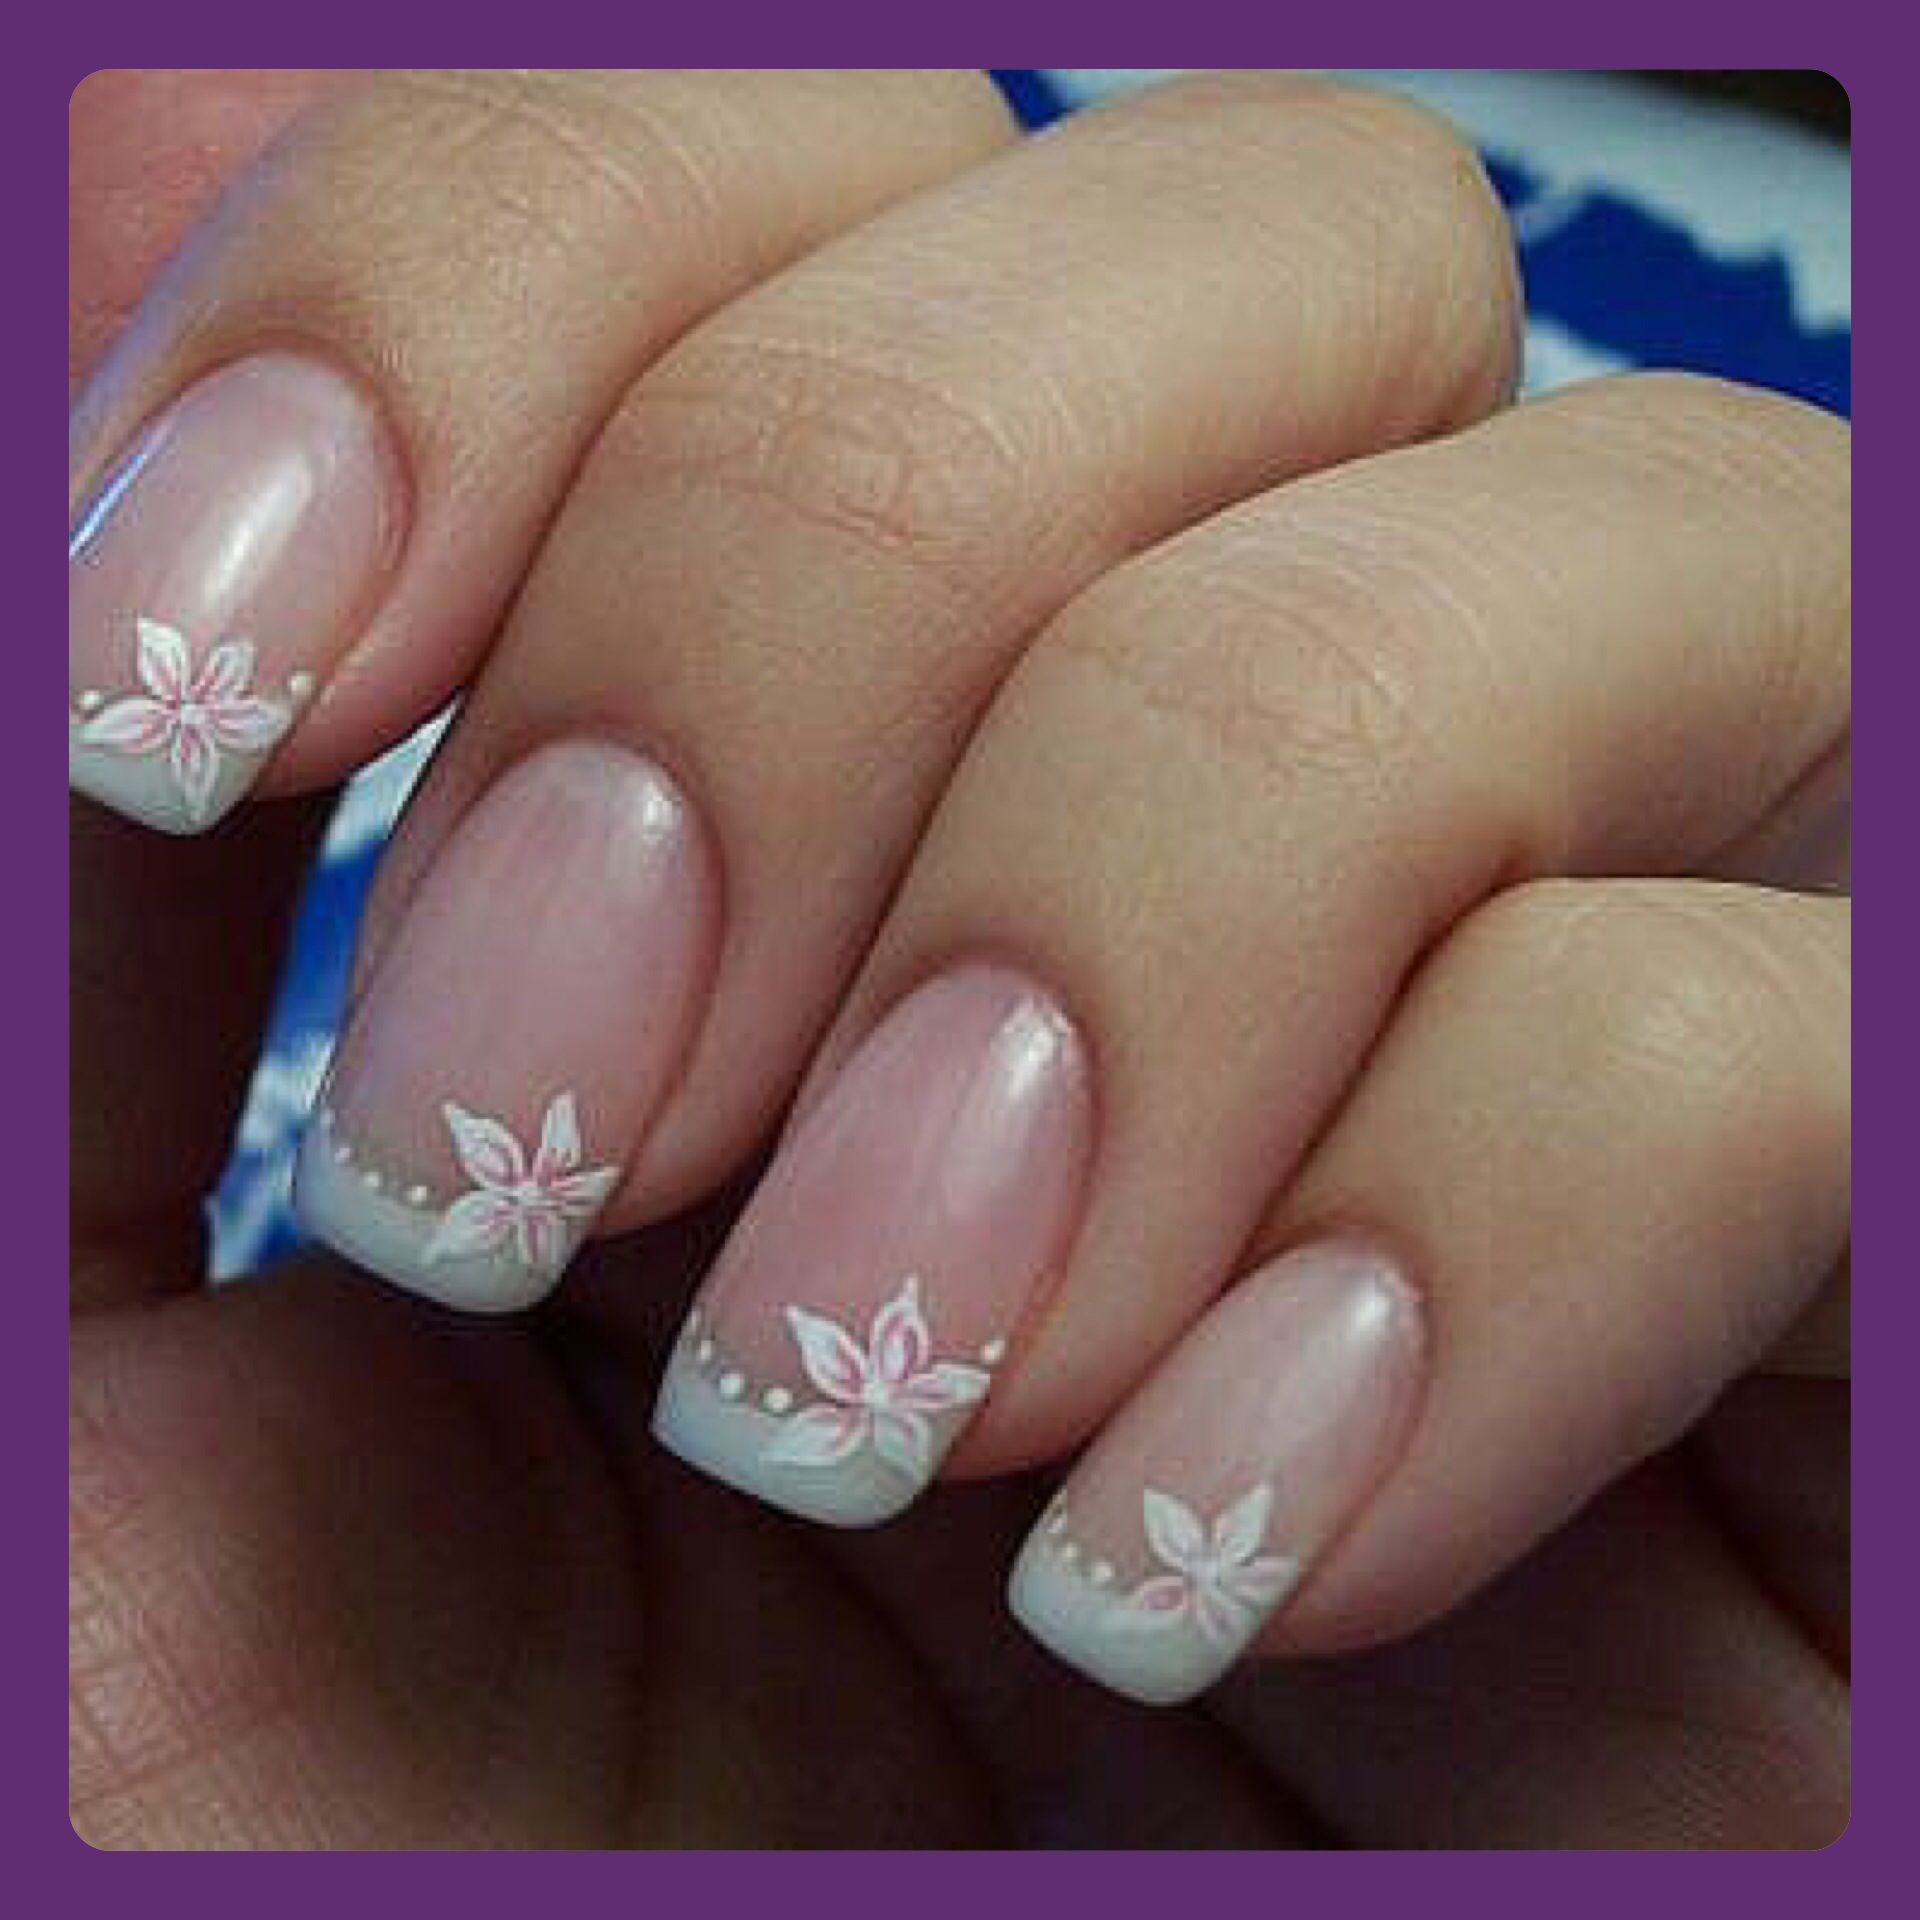 Wedding uas para boda save it pinterest manicure nail the winter blues french nail manicure the intricate science of nail art simple nice nail art designs blue flower nail design from revlon to prinsesfo Gallery